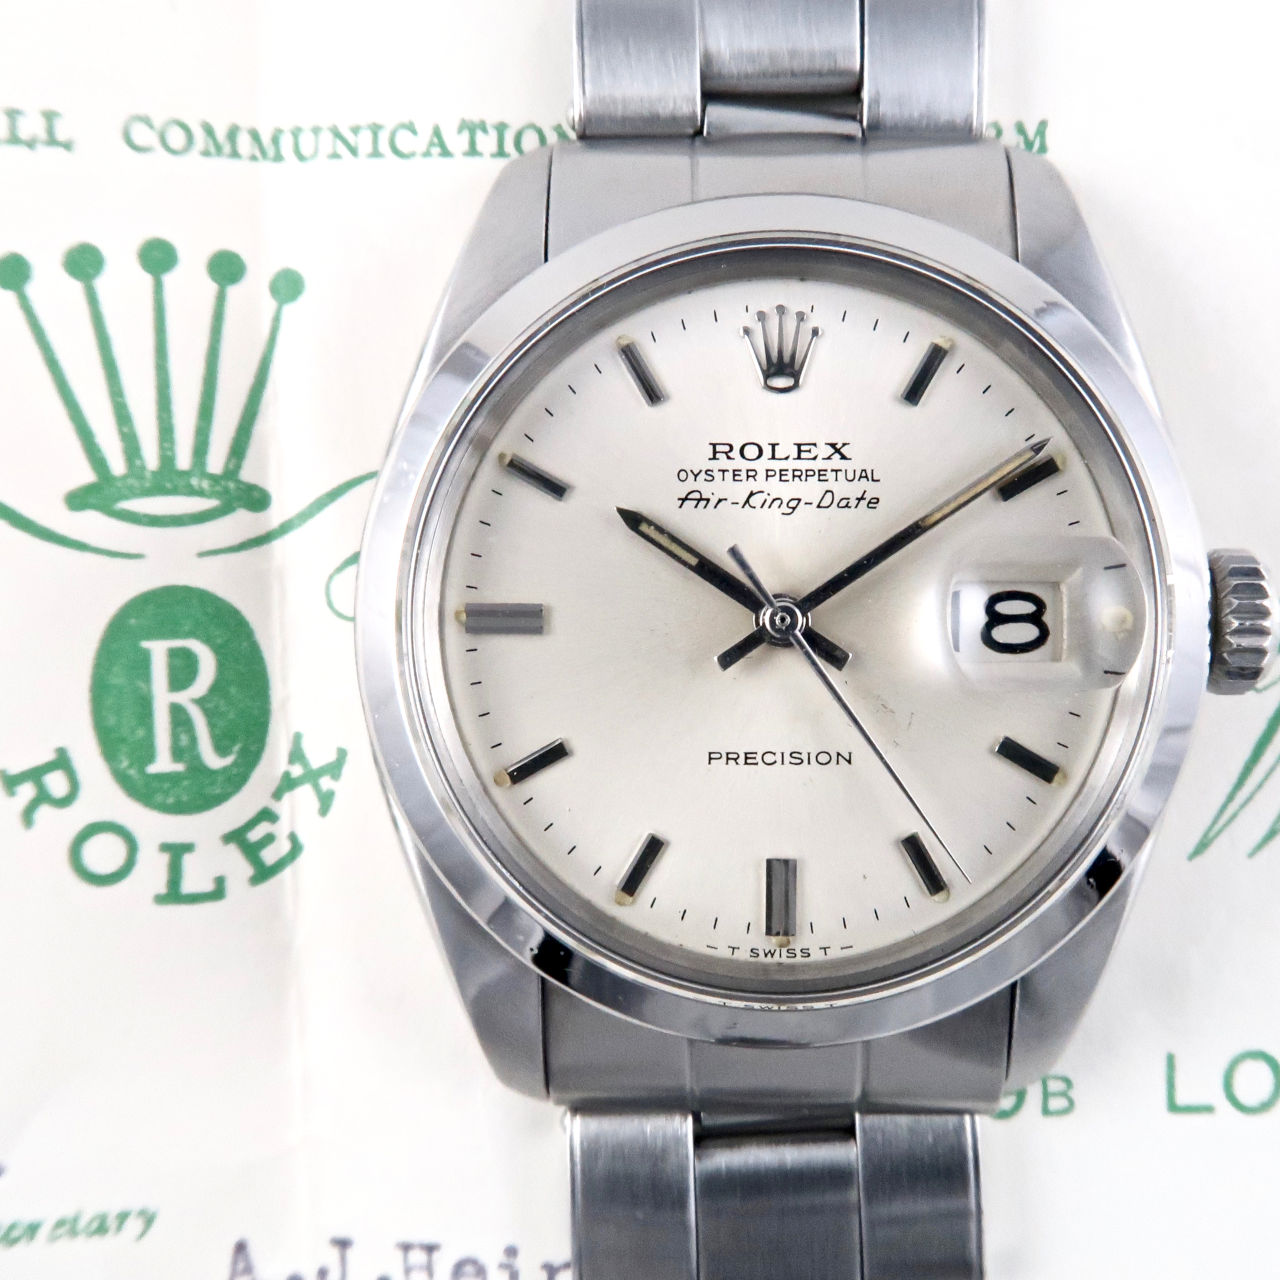 rolex-oyster-perpetual-air-king-date-ref-5700-steel-vintage-wristwatch-dated-1966-wxrakd-v01